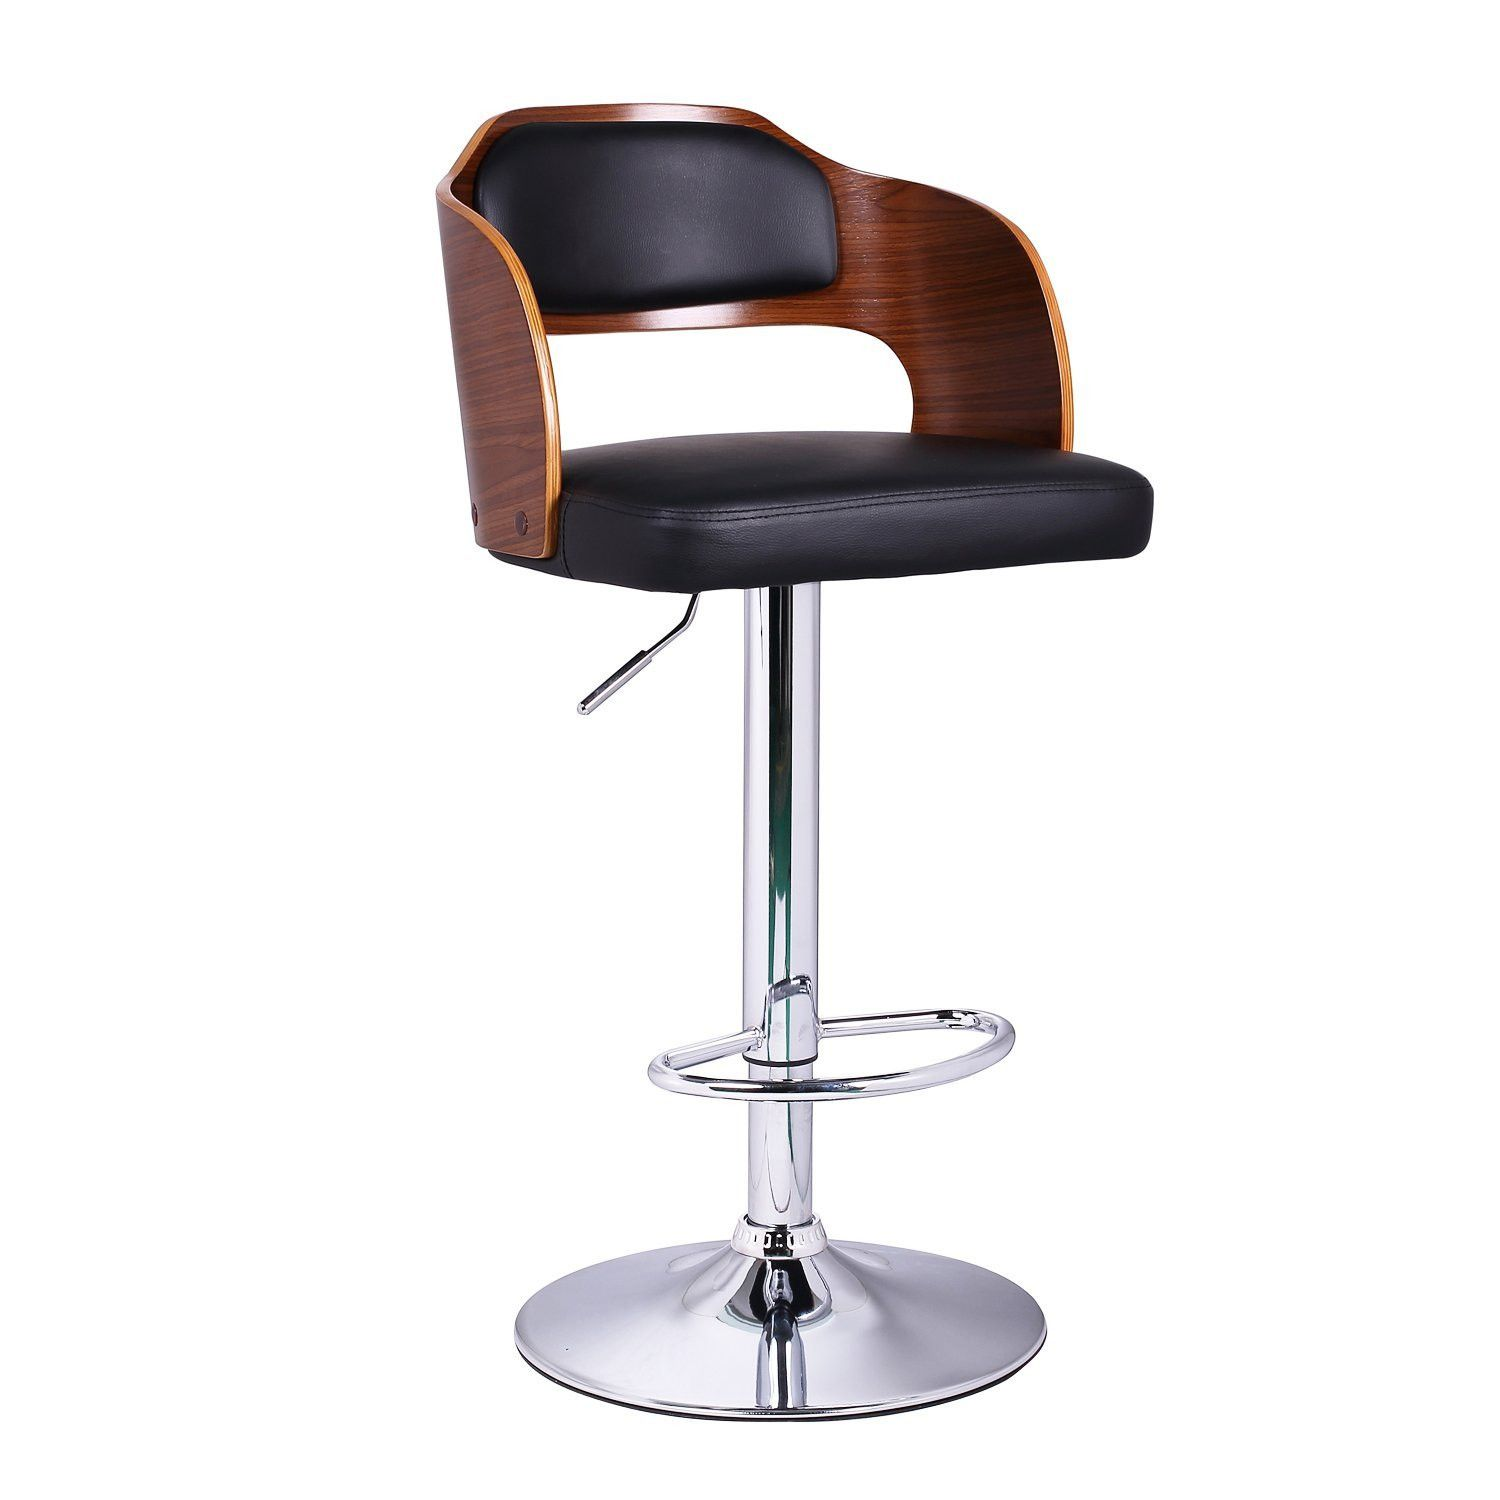 Miraculous Adeco Trading Adjustable Height Swivel Bar Stool With Gmtry Best Dining Table And Chair Ideas Images Gmtryco